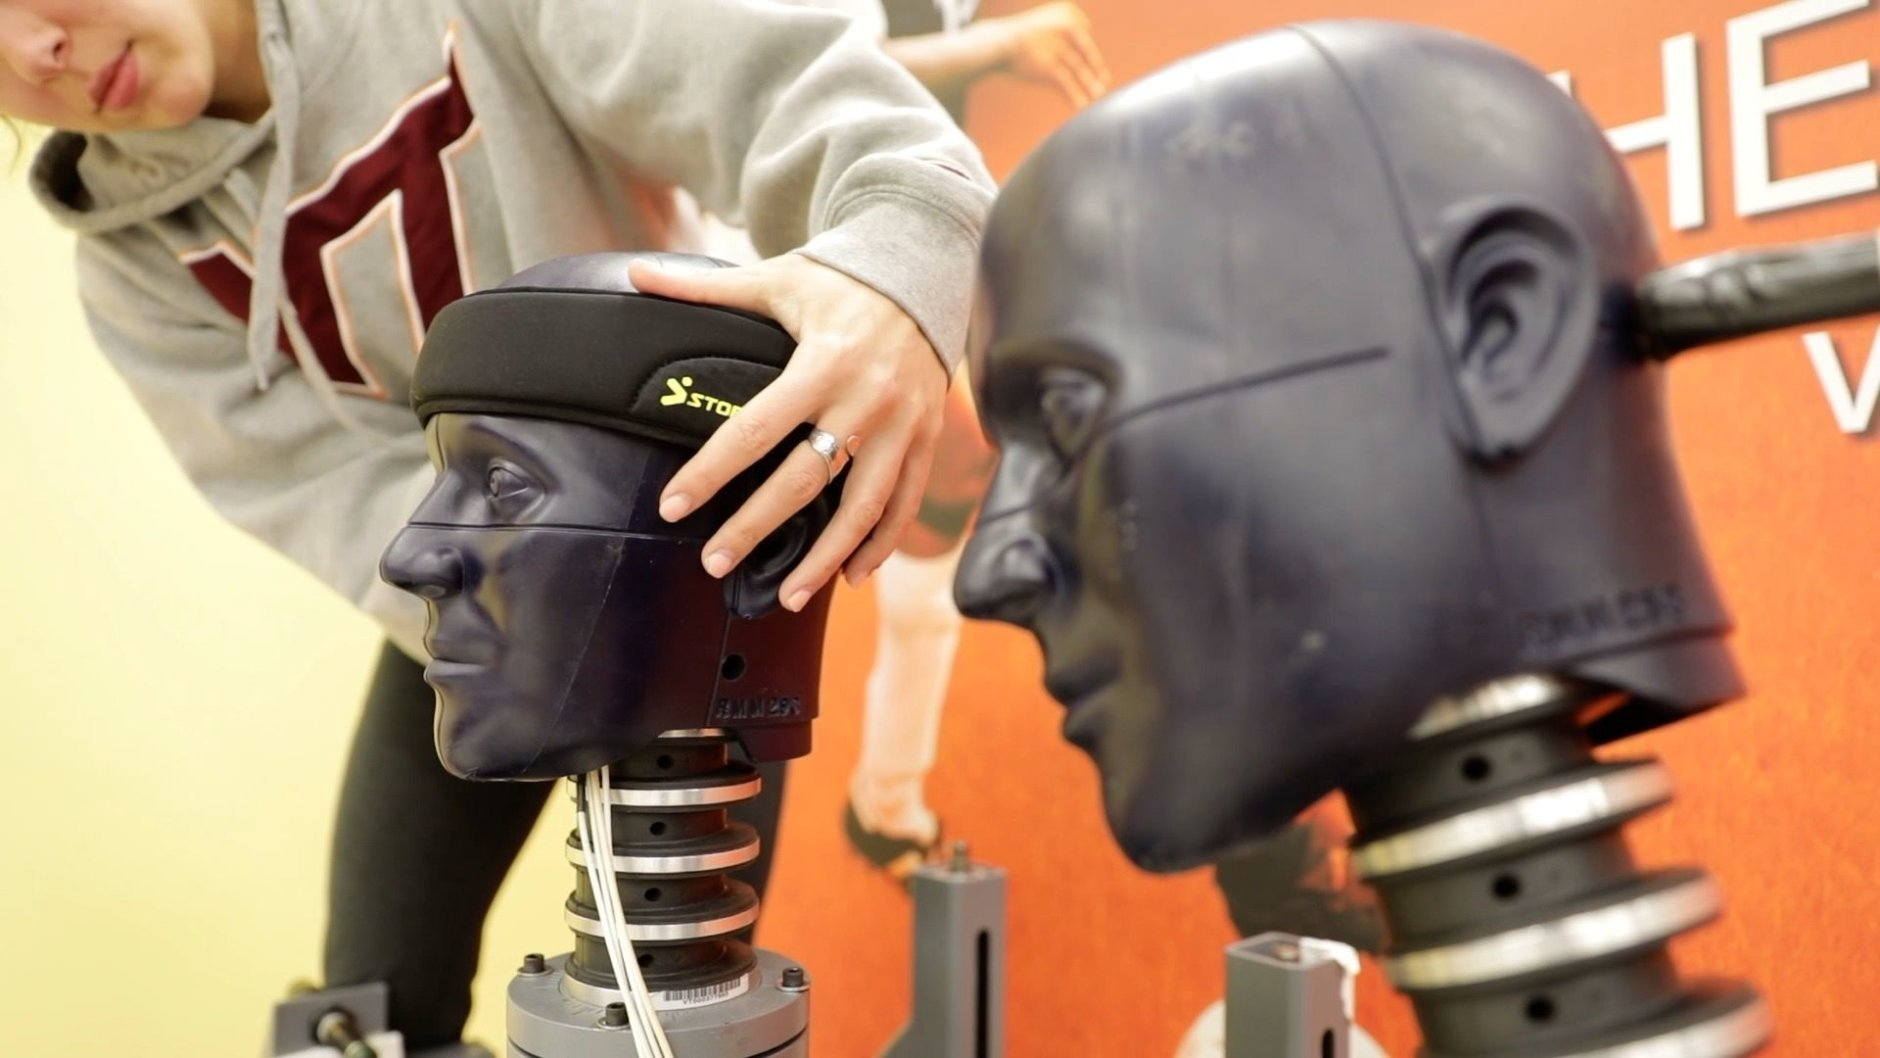 Sensors embedded in the dummy's heads measured linear and rotational acceleration for the calculation of a STAR rating, which represents how much the equipment reduced a player's risk of concussion for a given impact. (Courtesy Virginia Tech)